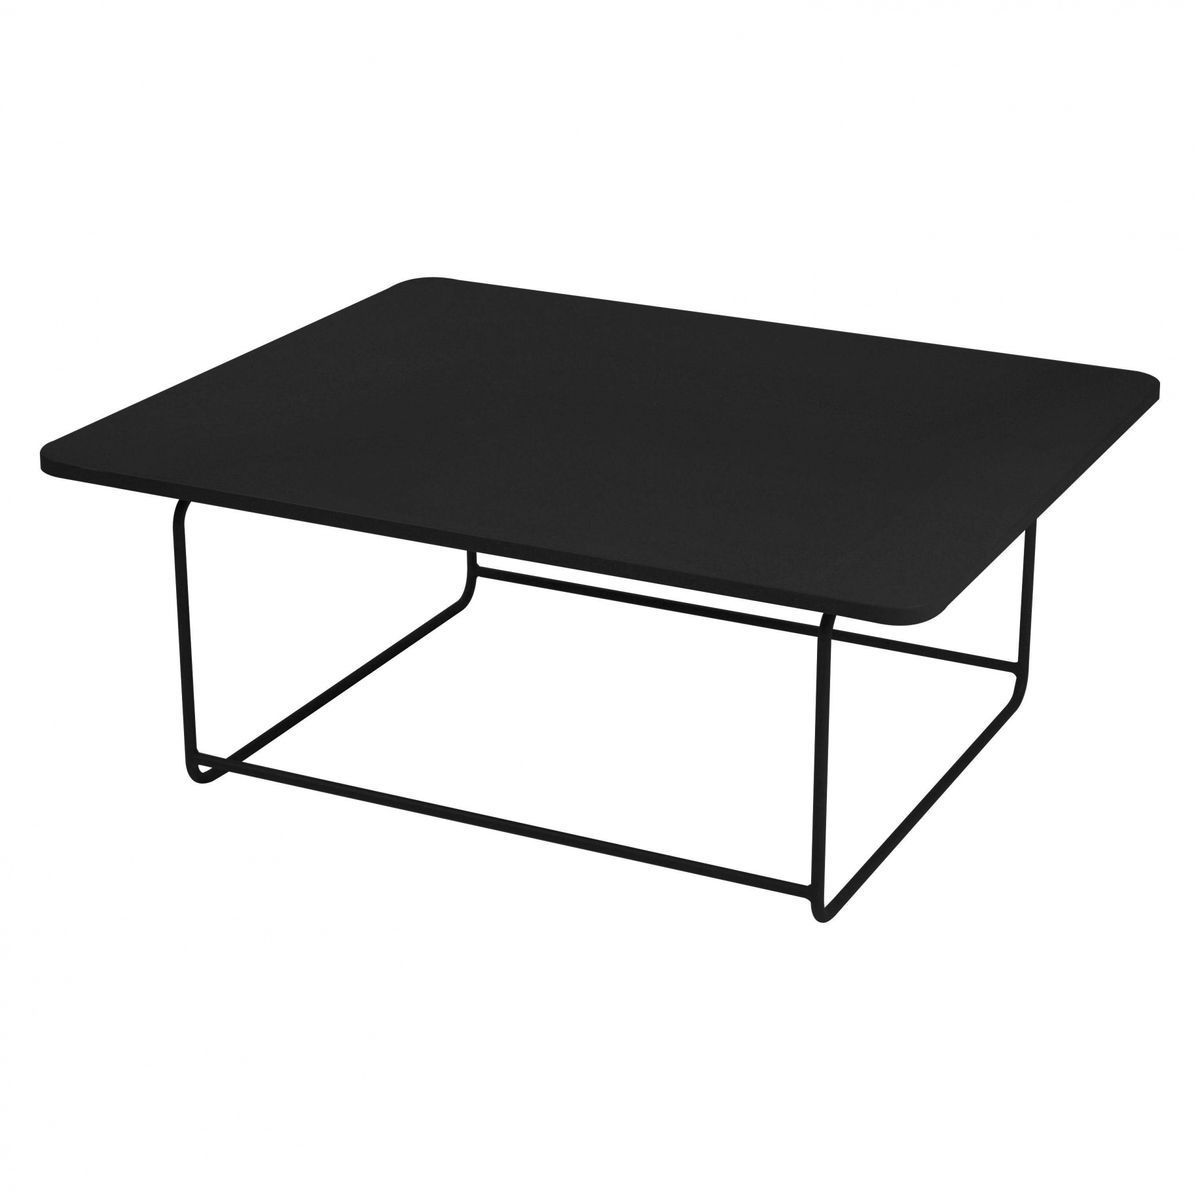 ellipse side table fermob. Black Bedroom Furniture Sets. Home Design Ideas